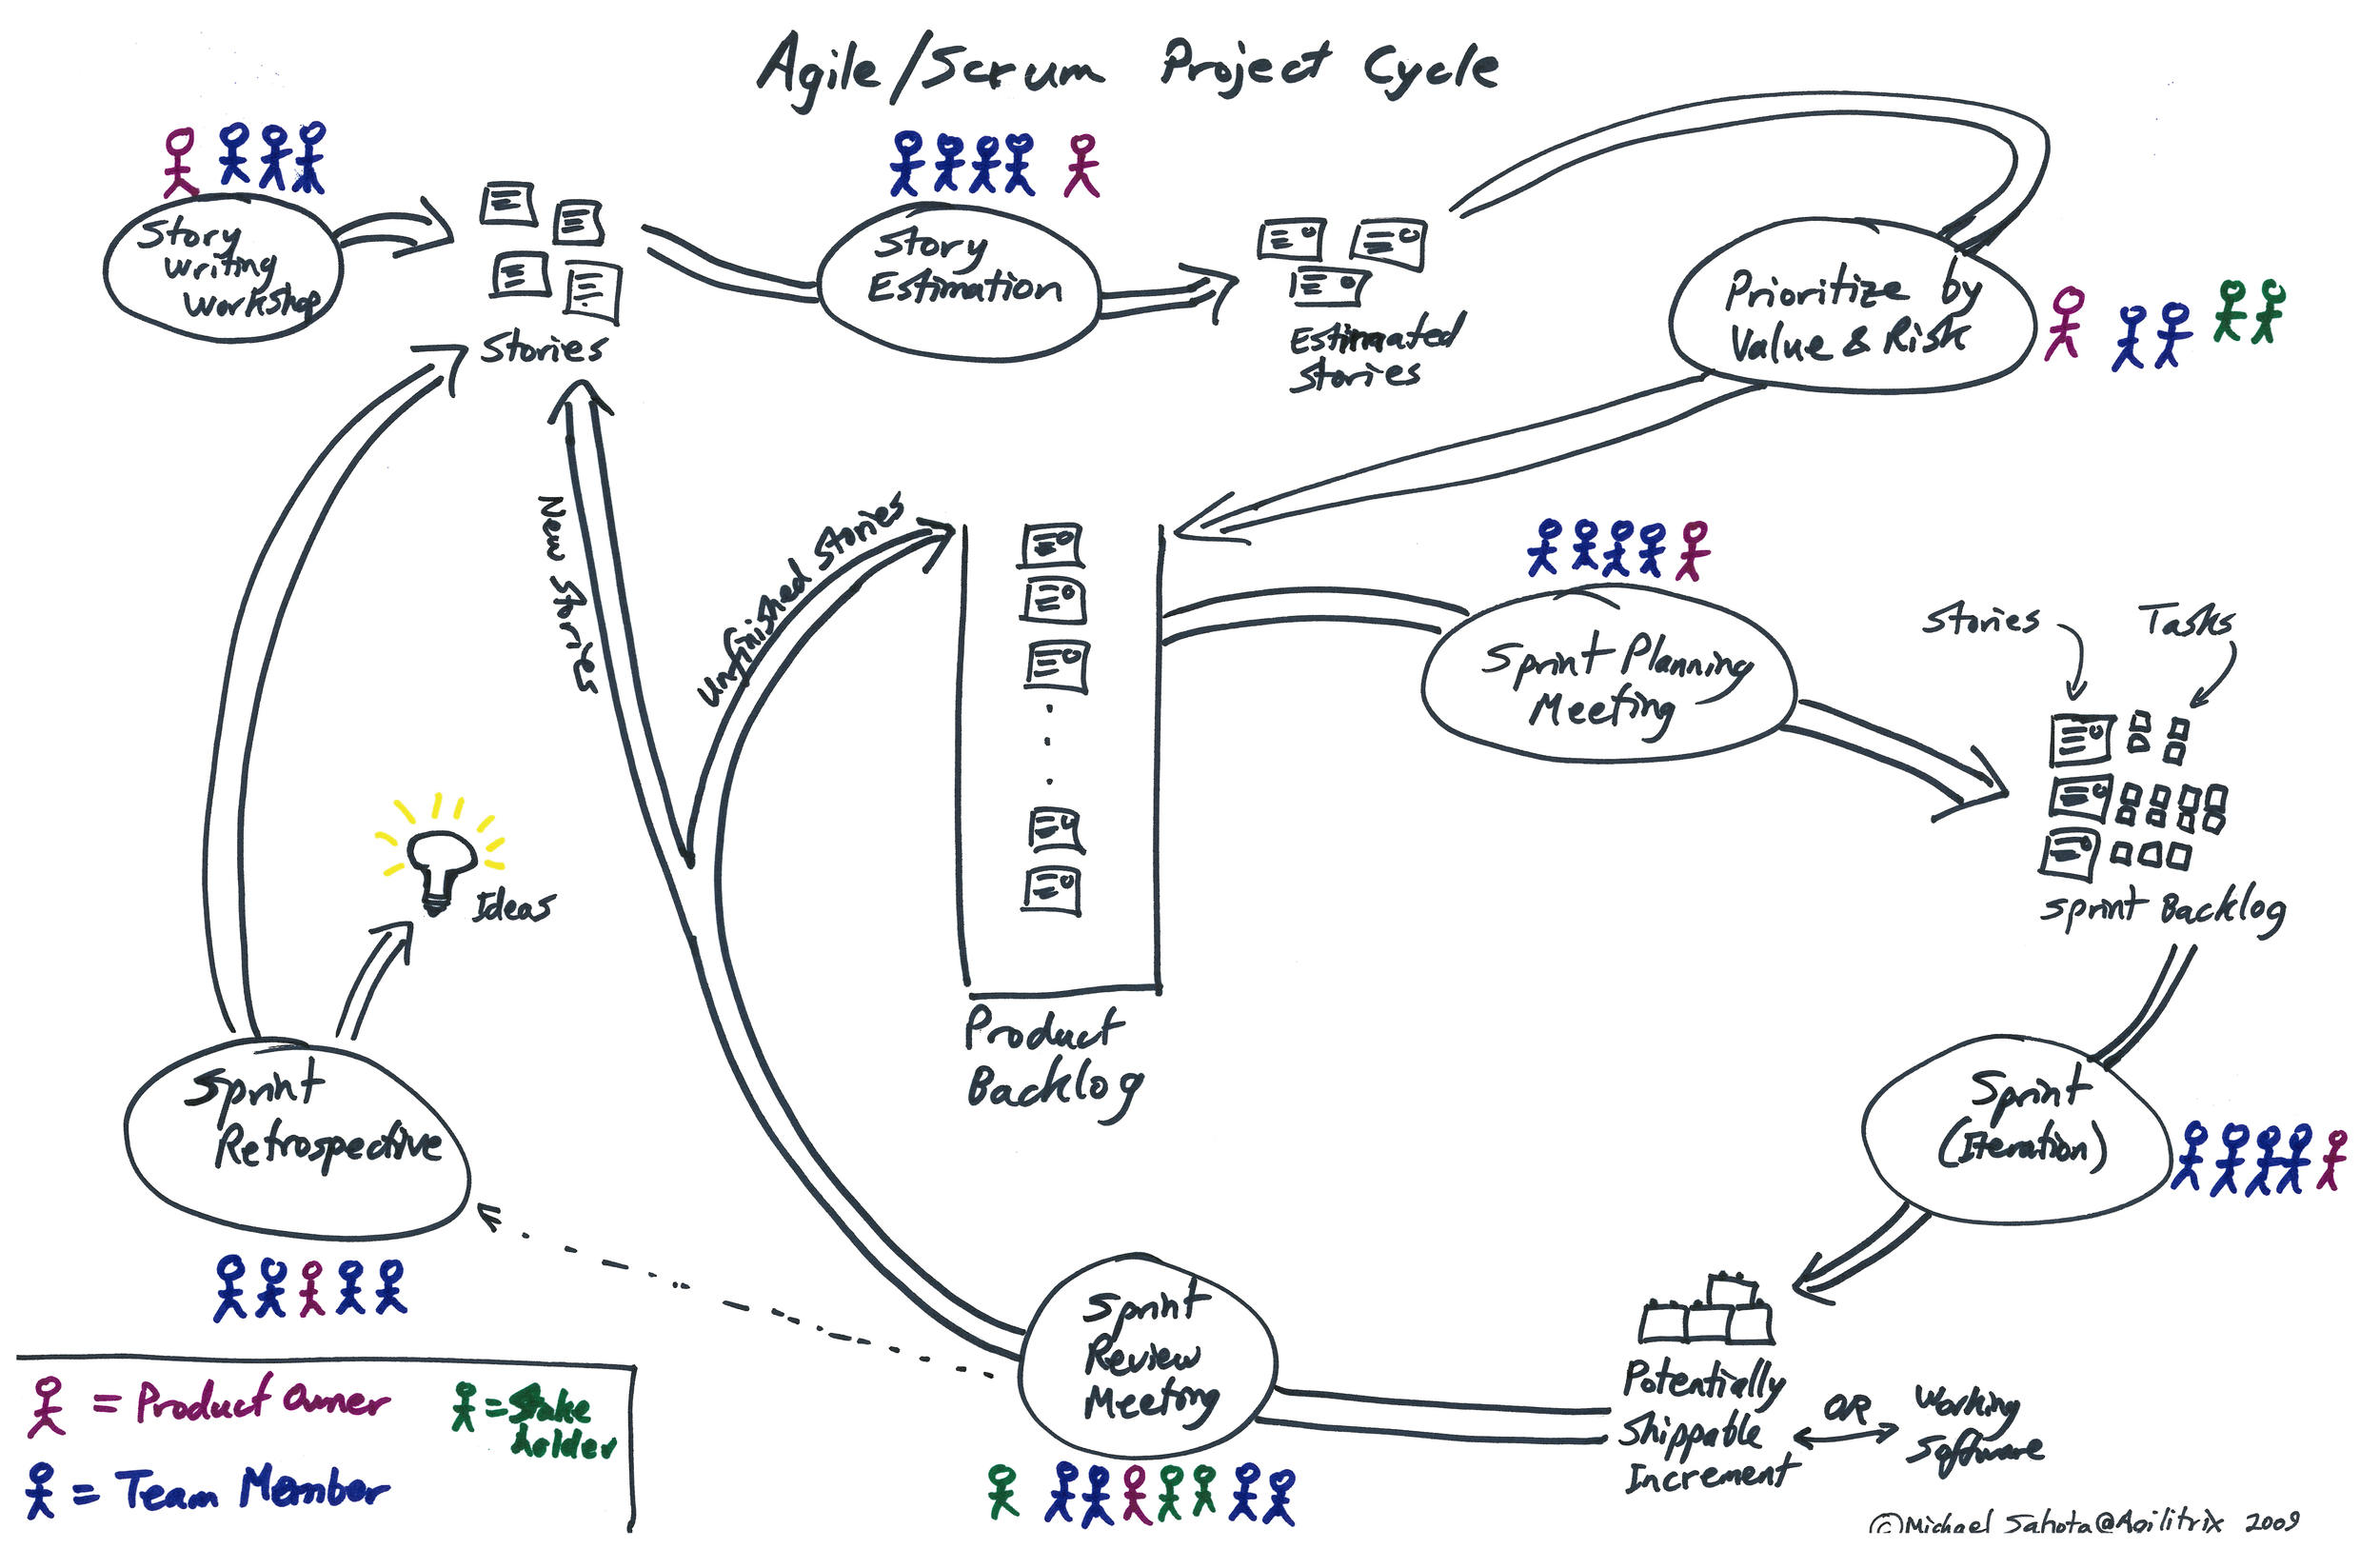 A great capture of the SCRUM cycle courtesy of Agilitrix.com